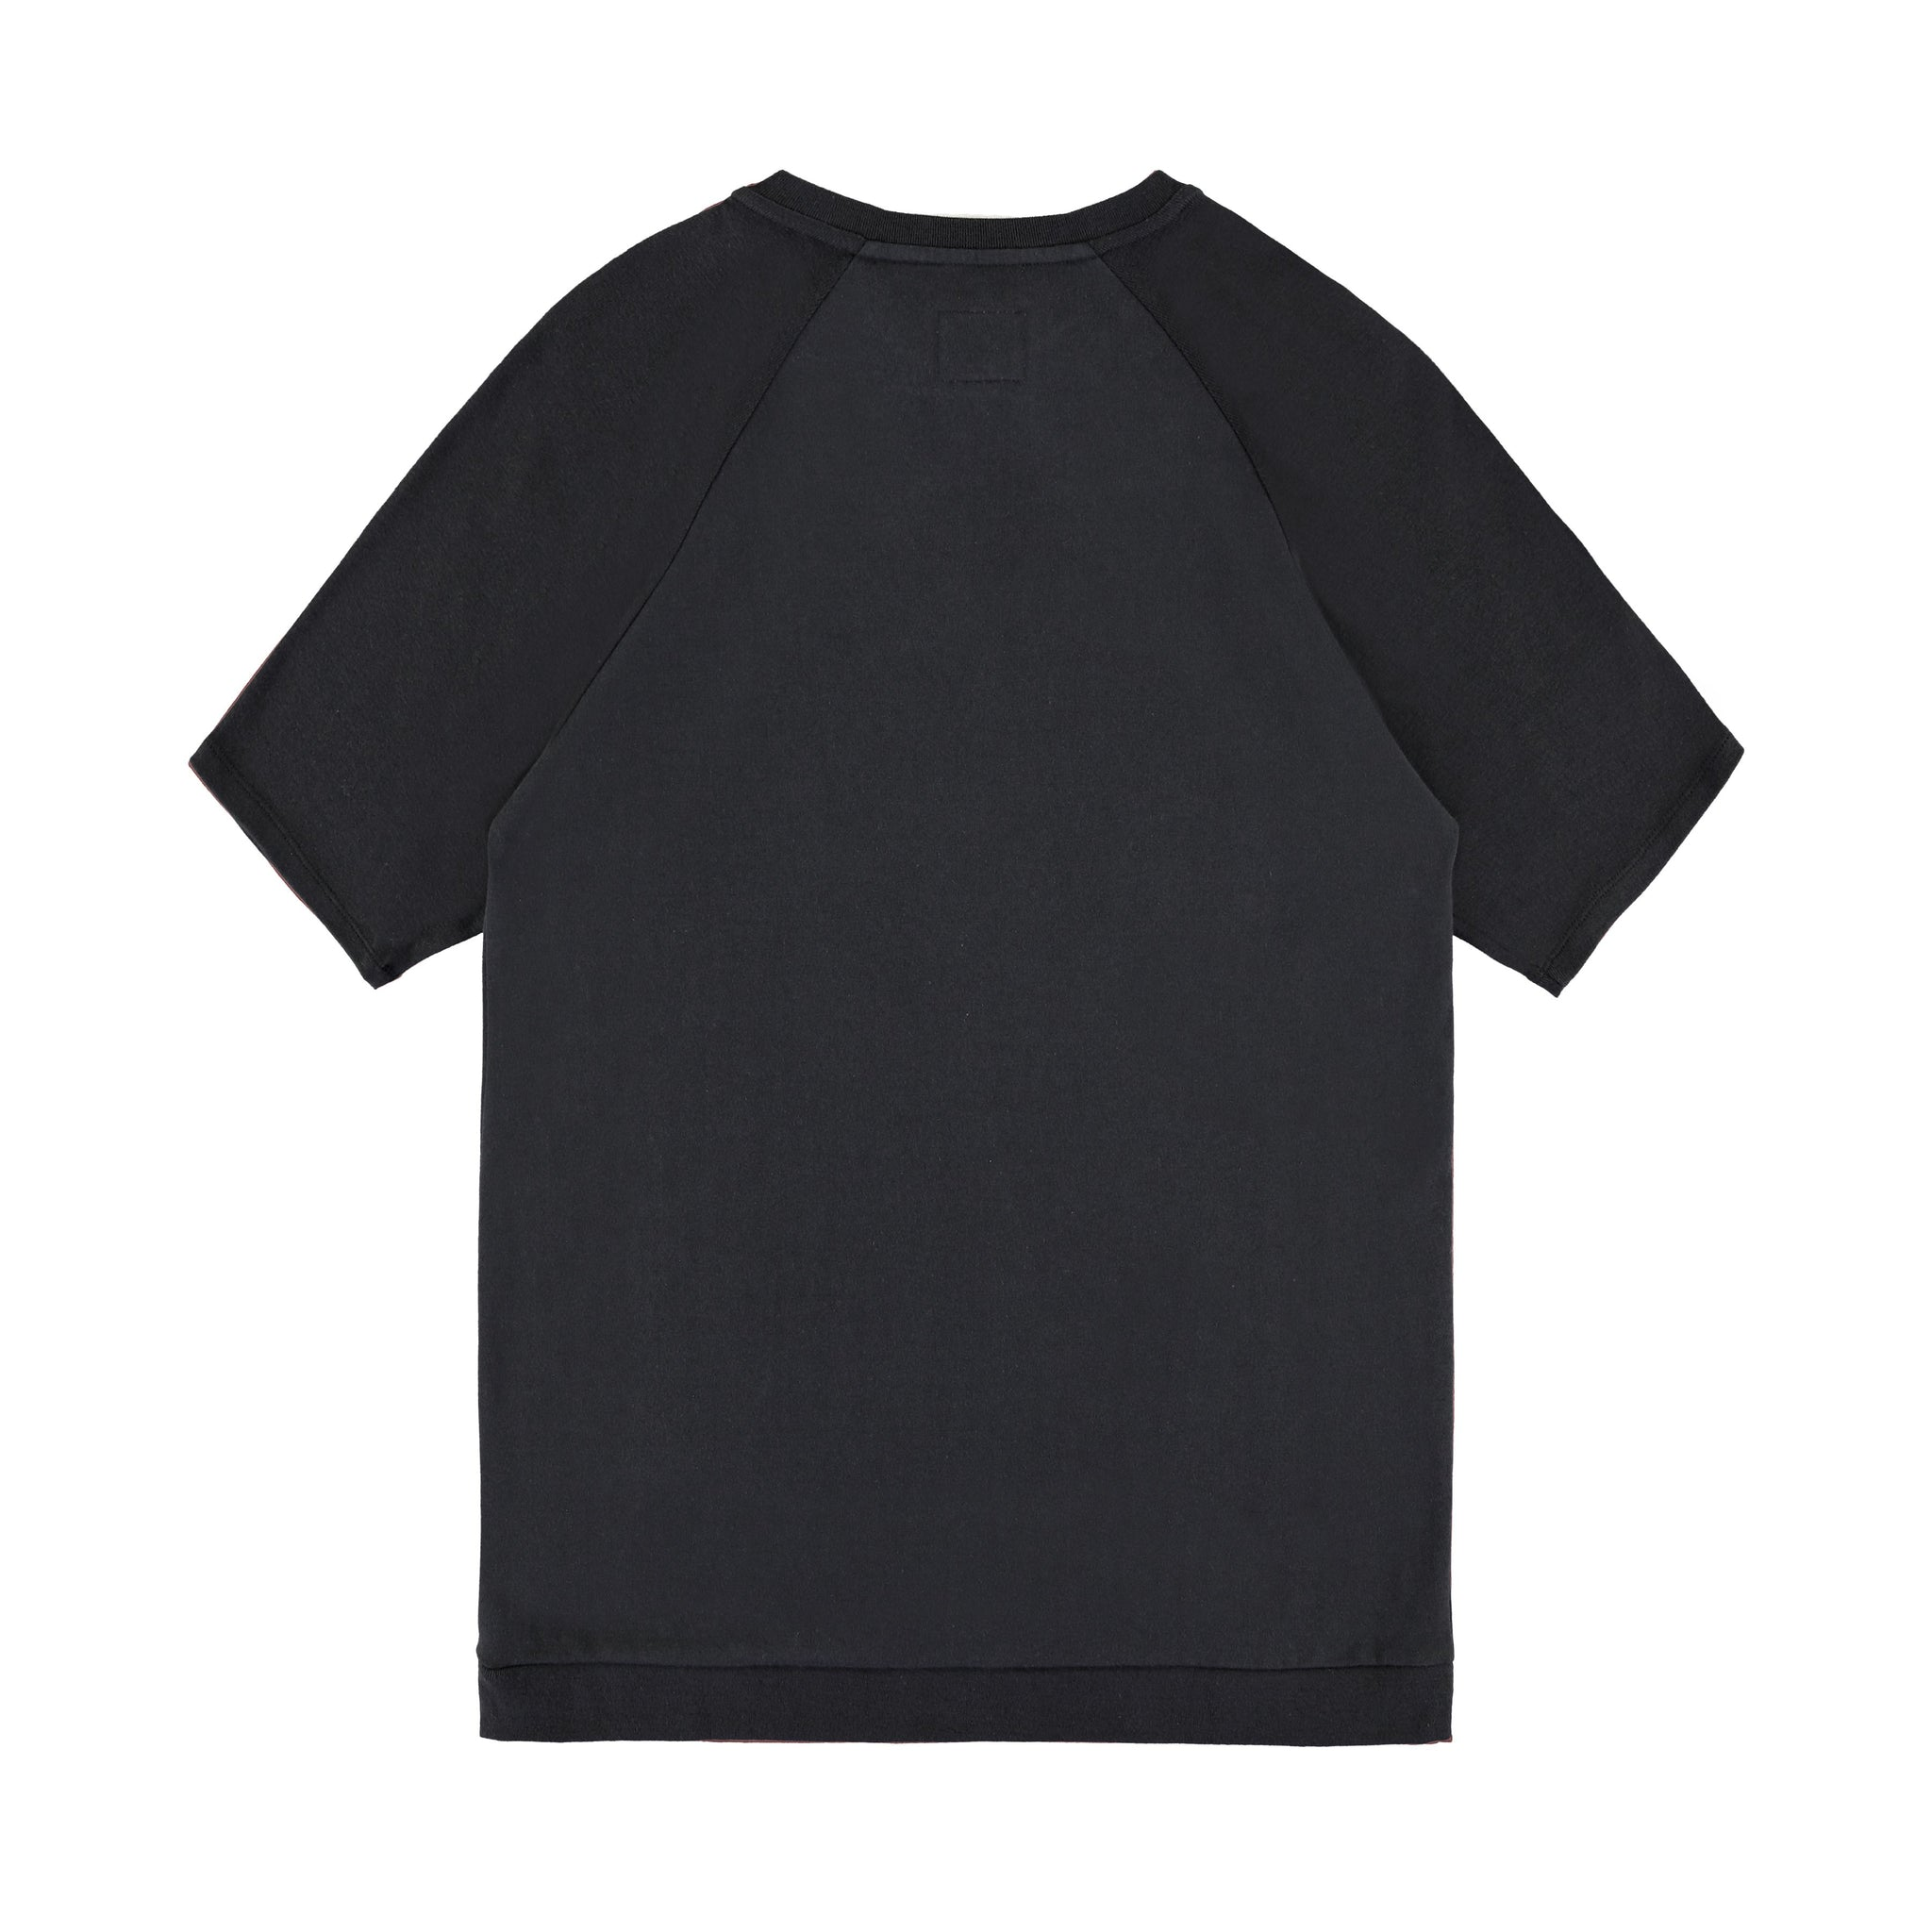 ARROYO - T-SHIRT - JET BLACK